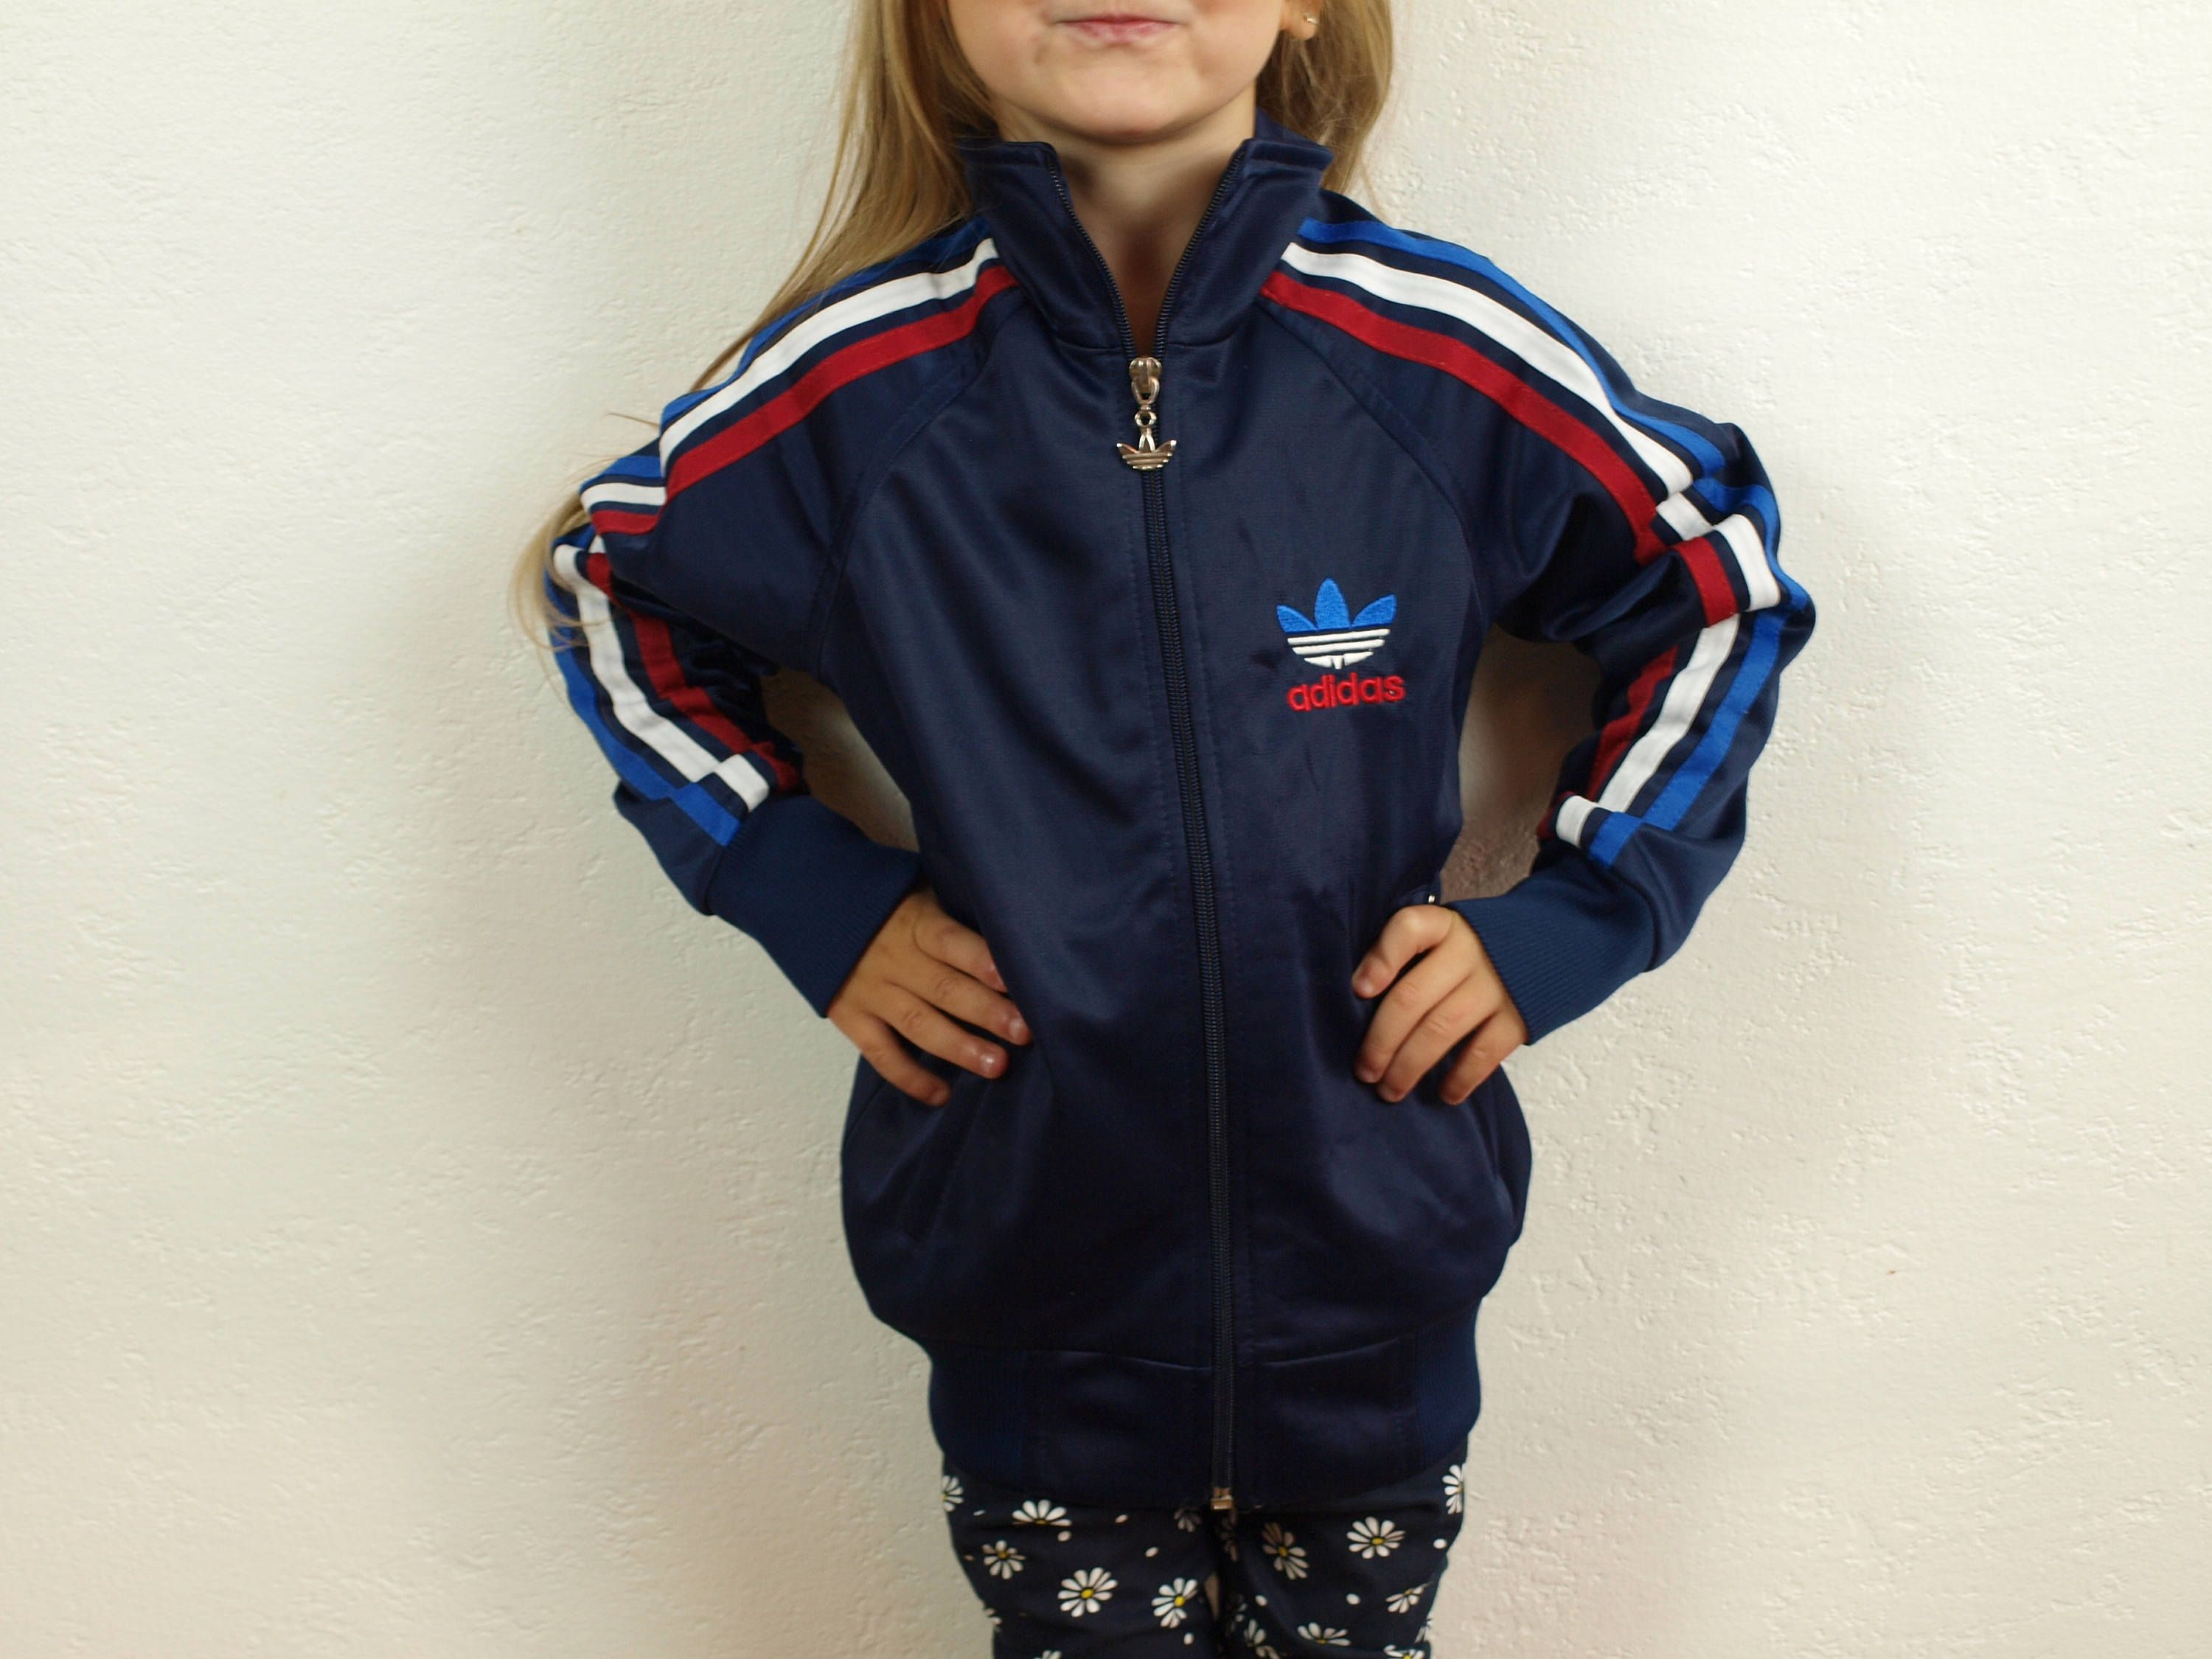 Kid s Adidas jacket, Adidas windbreaker Vintage Adidas navy blue color  three stripes in red, white blue Size 110, 5-6 years 90s Adidas by  SillyPurpleZephyre ... 750ee2d832